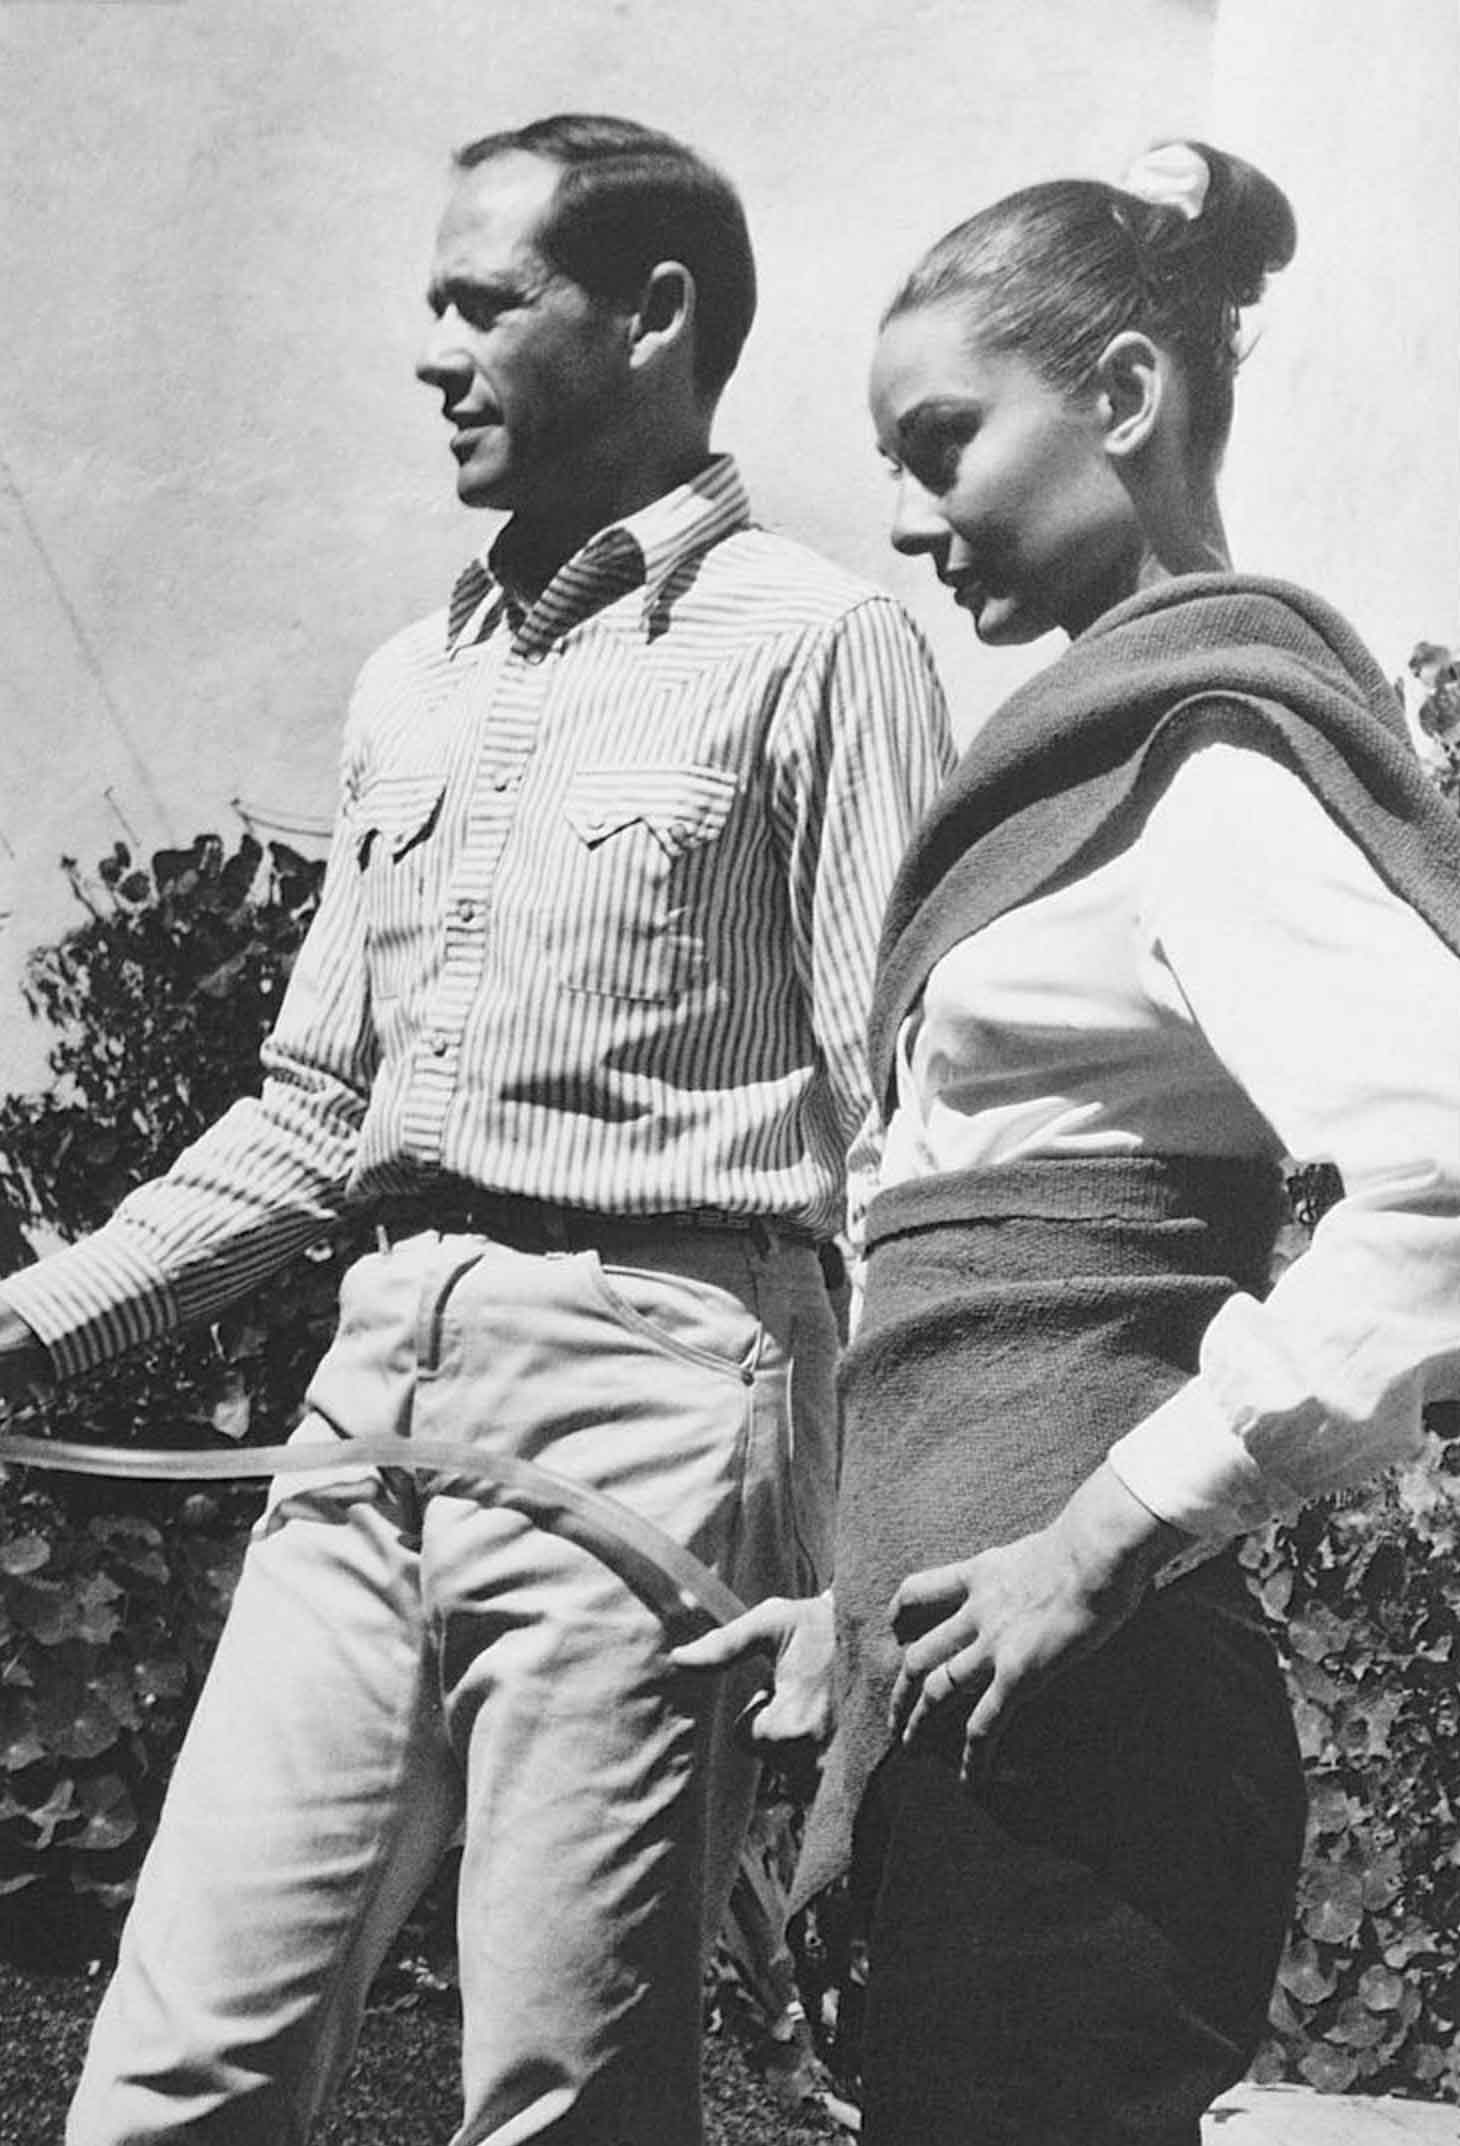 re timelessaudreyhepburnAudrey and Mel photographed  probably by Inge Morathin Mexico1959My scan from Japanese Spur mag1993 issue AudreyHepburn MelFerrer copy